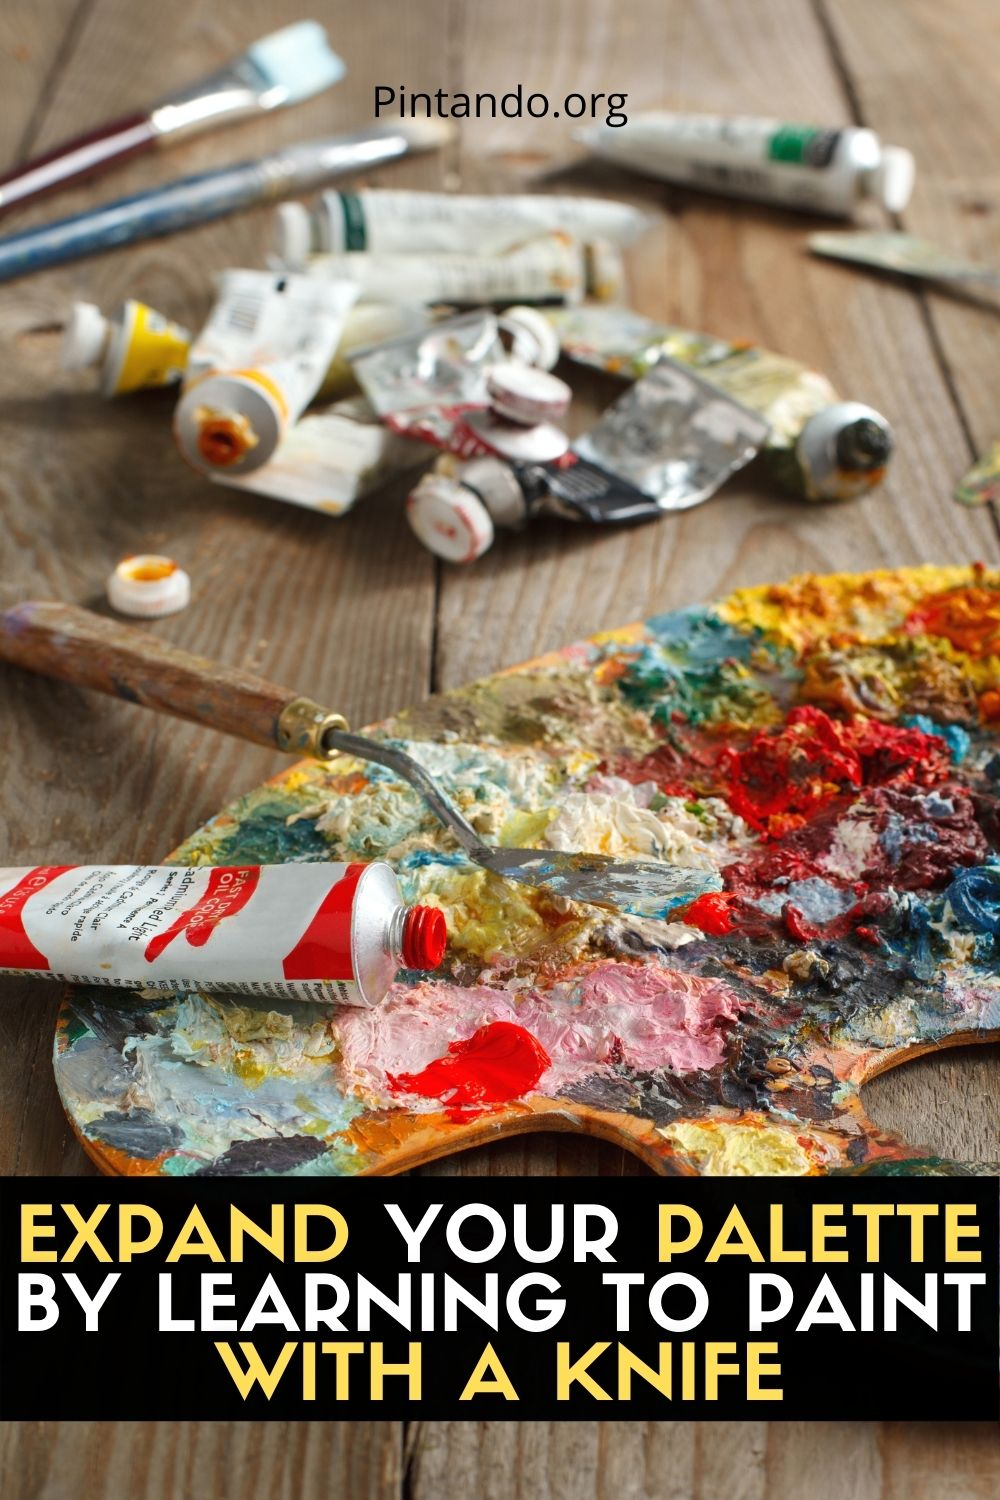 EXPAND YOUR PALETTE BY LEARNING TO PAINT WITH A KNIFE